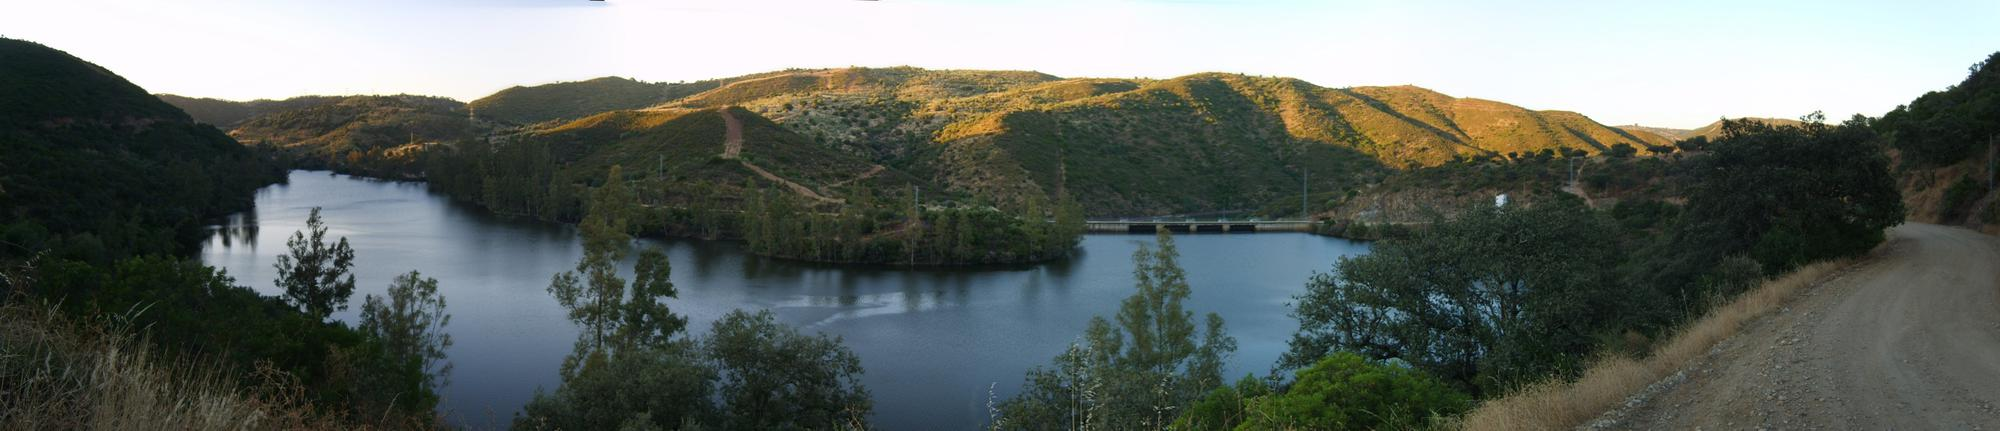 pano-embalse-guillena-2.jpg